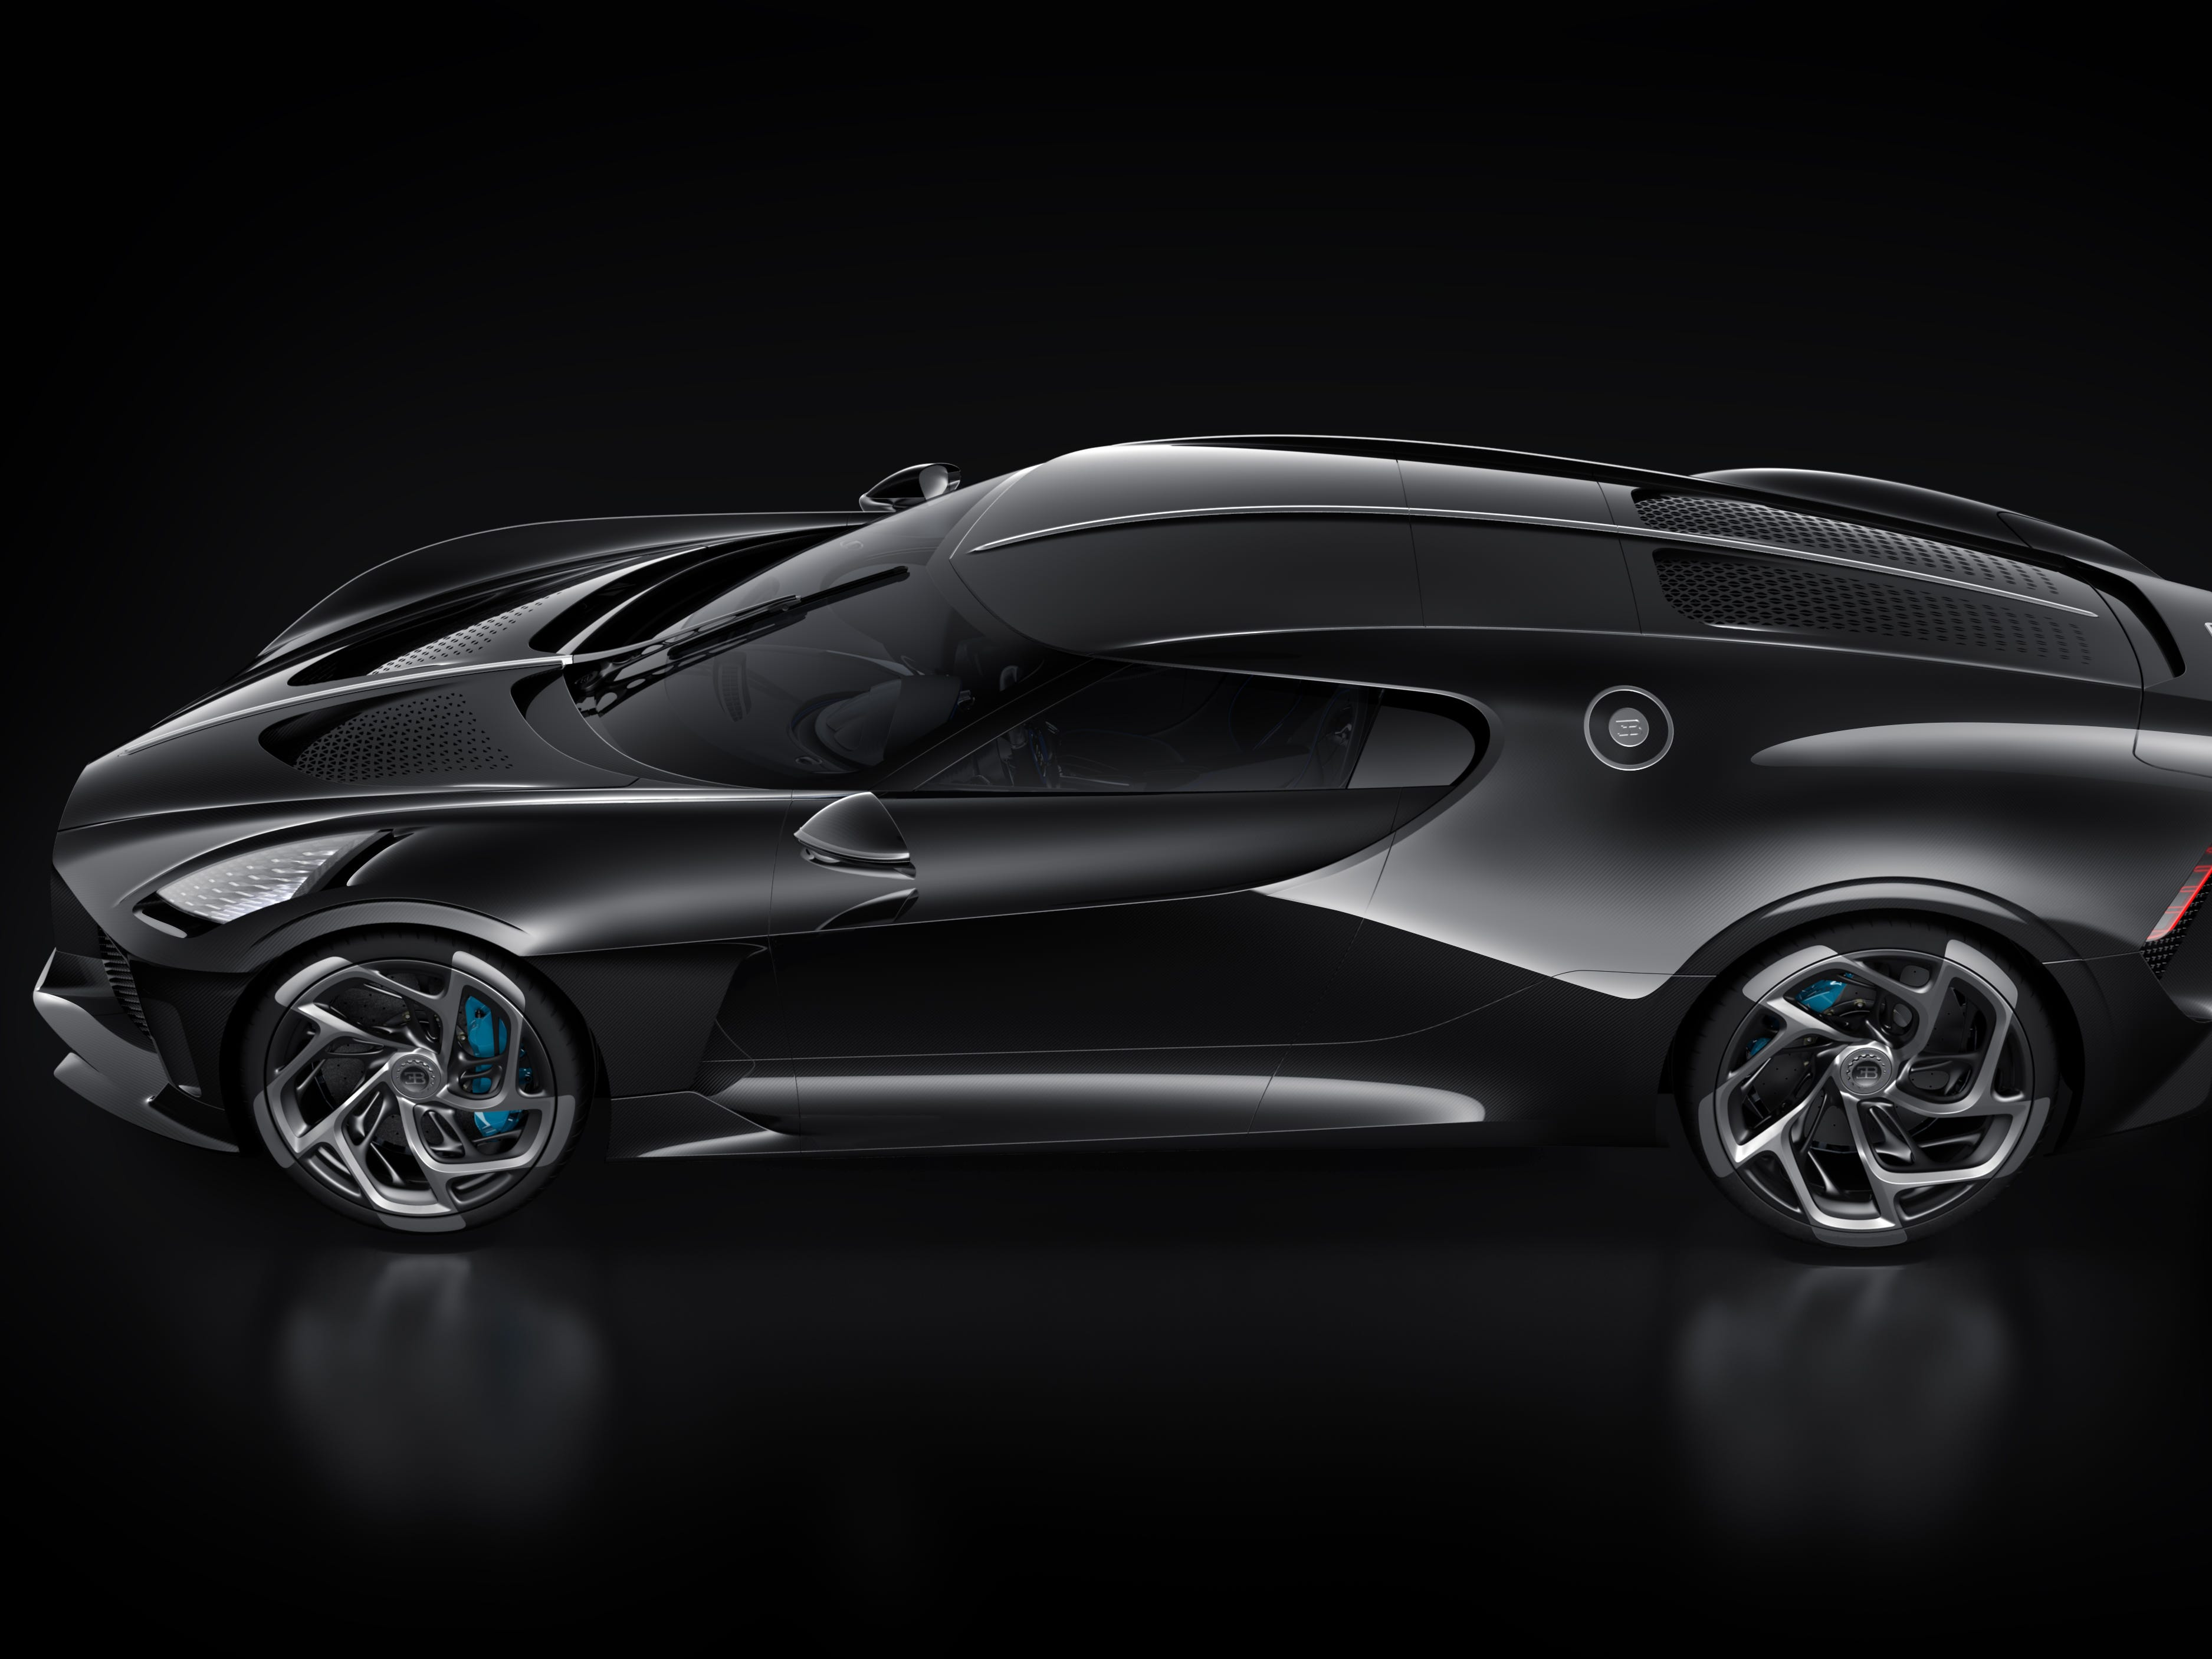 Bugatti's super-wealthy customers appreciate the brand's expertise in turning out cars to their exact specifications, according to the company's design director Achim Anscheidt.